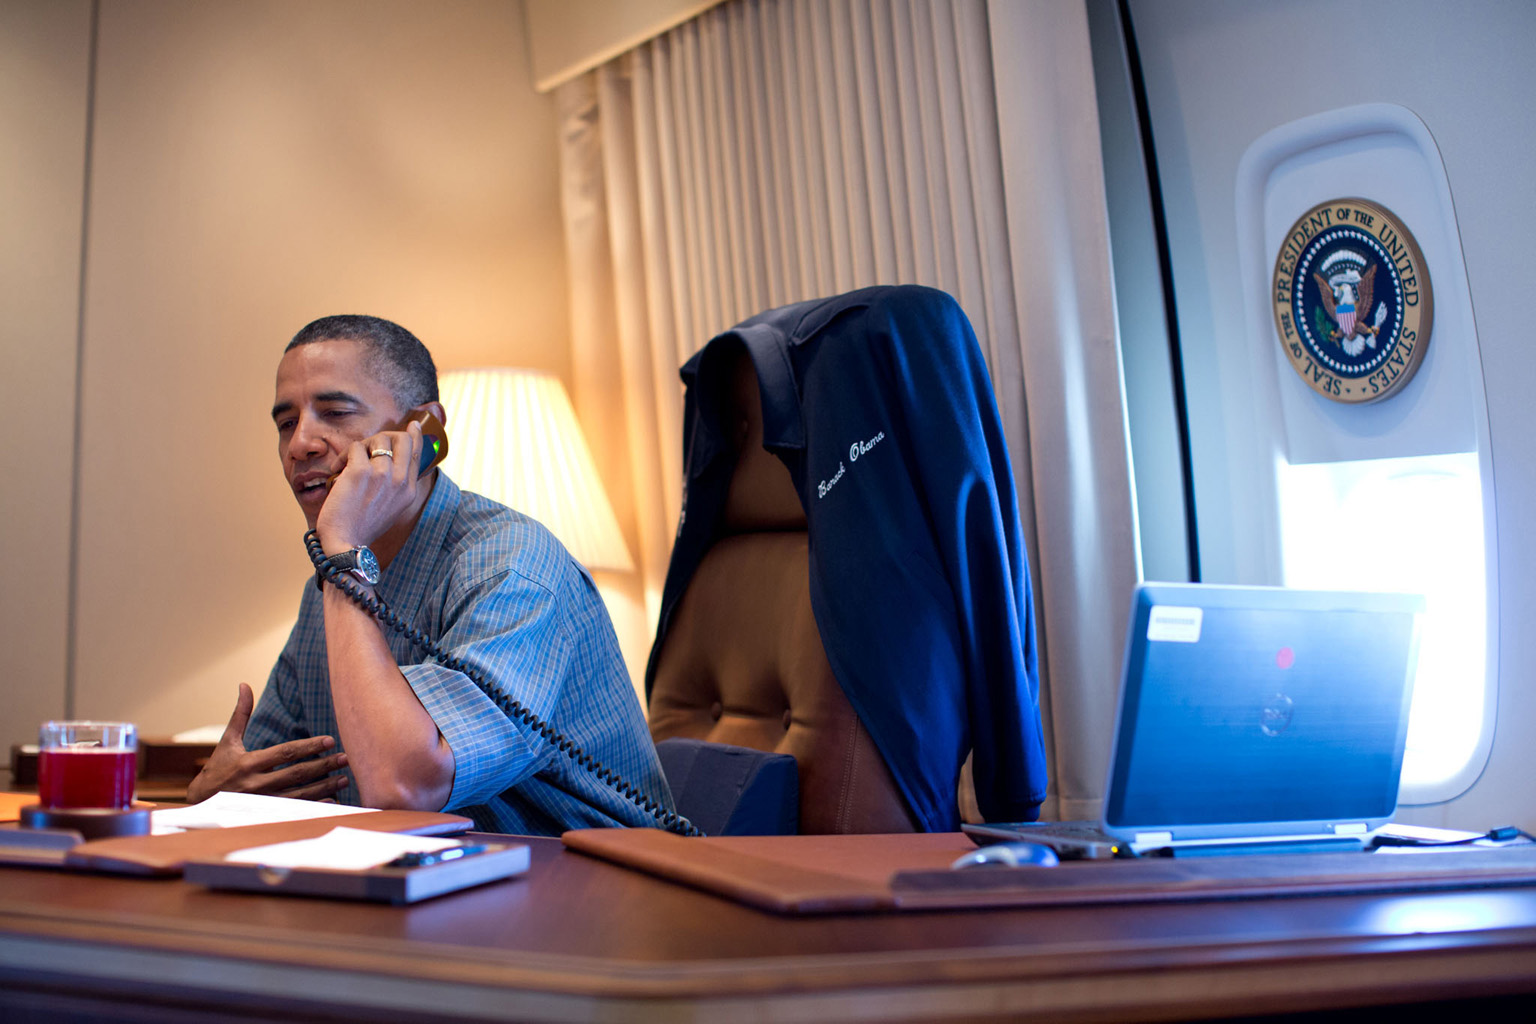 President Barack Obama talks on the phone with NASA's Curiosity Mars rover team aboard Air Force One during a flight to Offutt Air Force Base in Nebraska, Aug. 13, 2012. (Official White House Photo by Pete Souza)